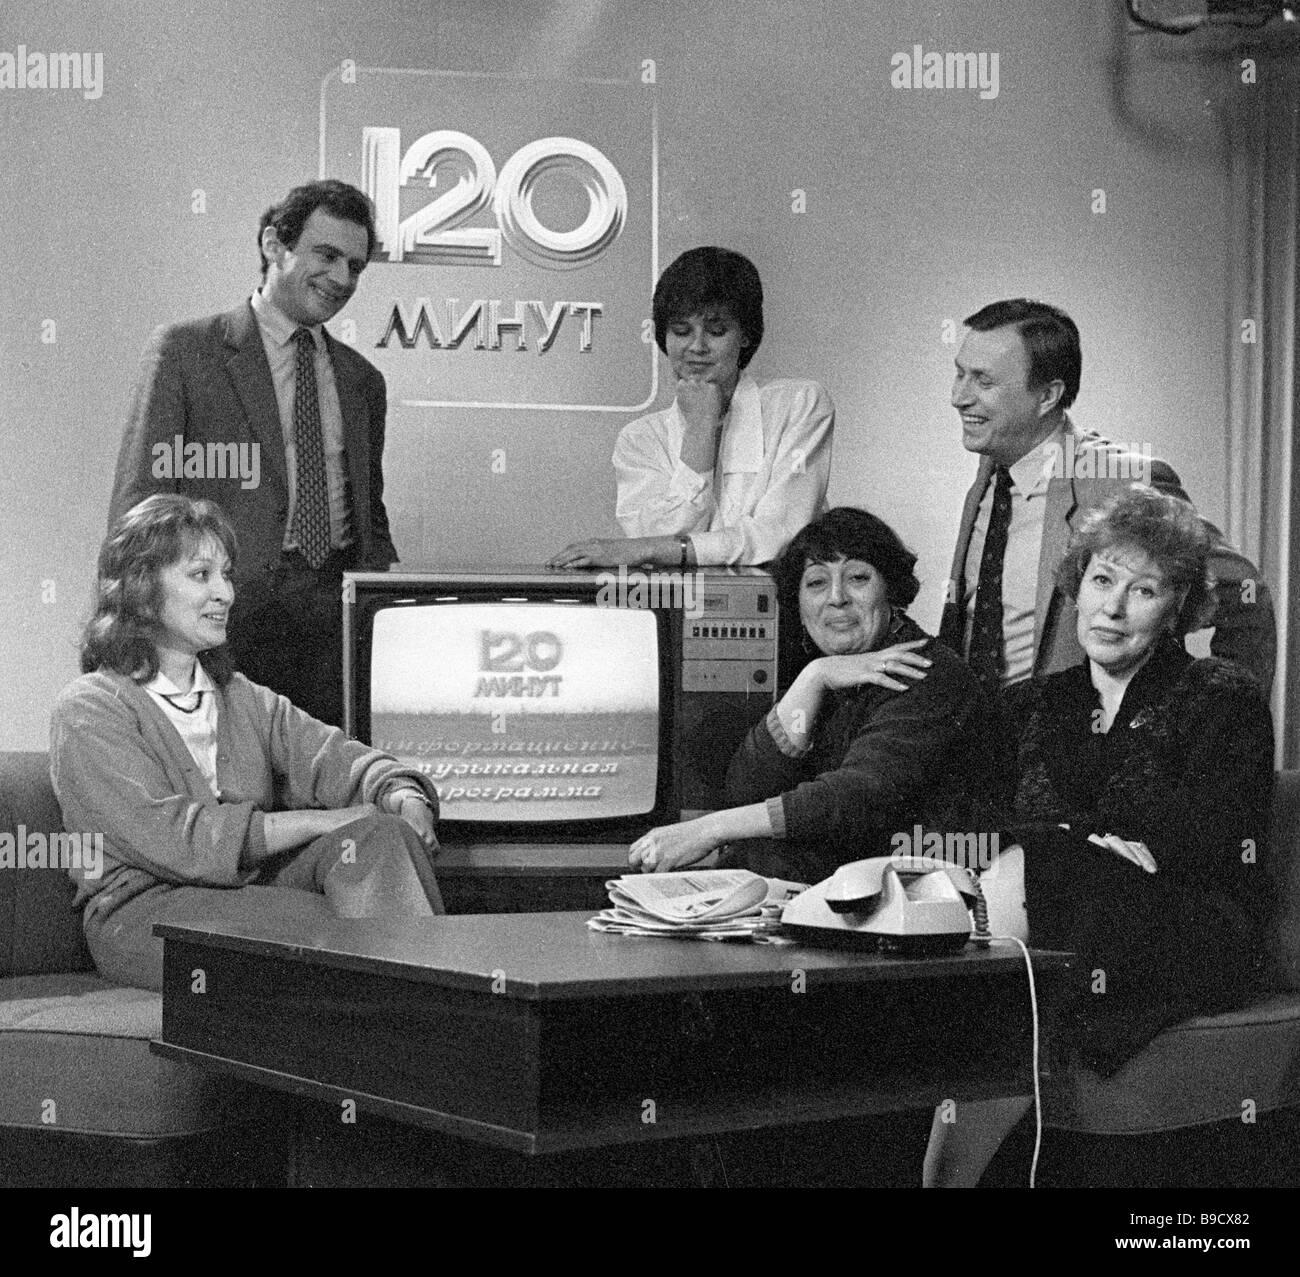 The 120 Minutes morning news and music program crew Central Television Russia - Stock Image